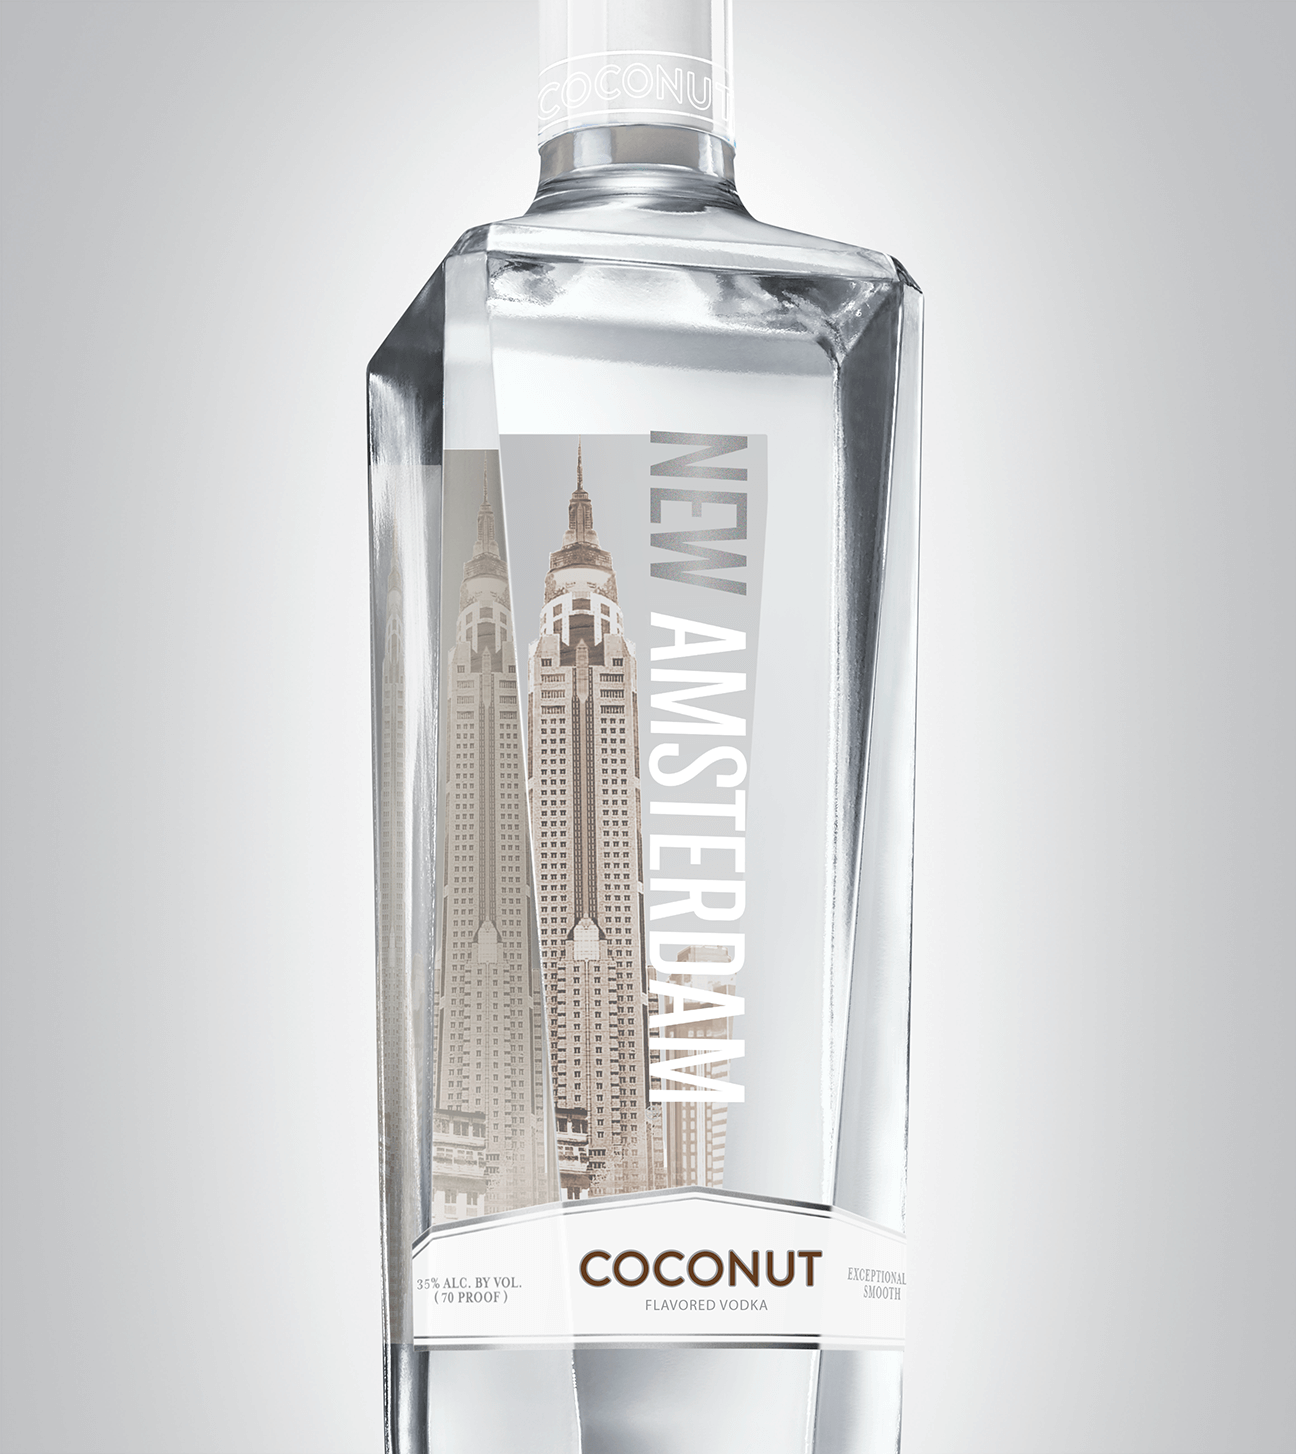 Bottle of New Amsterdam Coconut